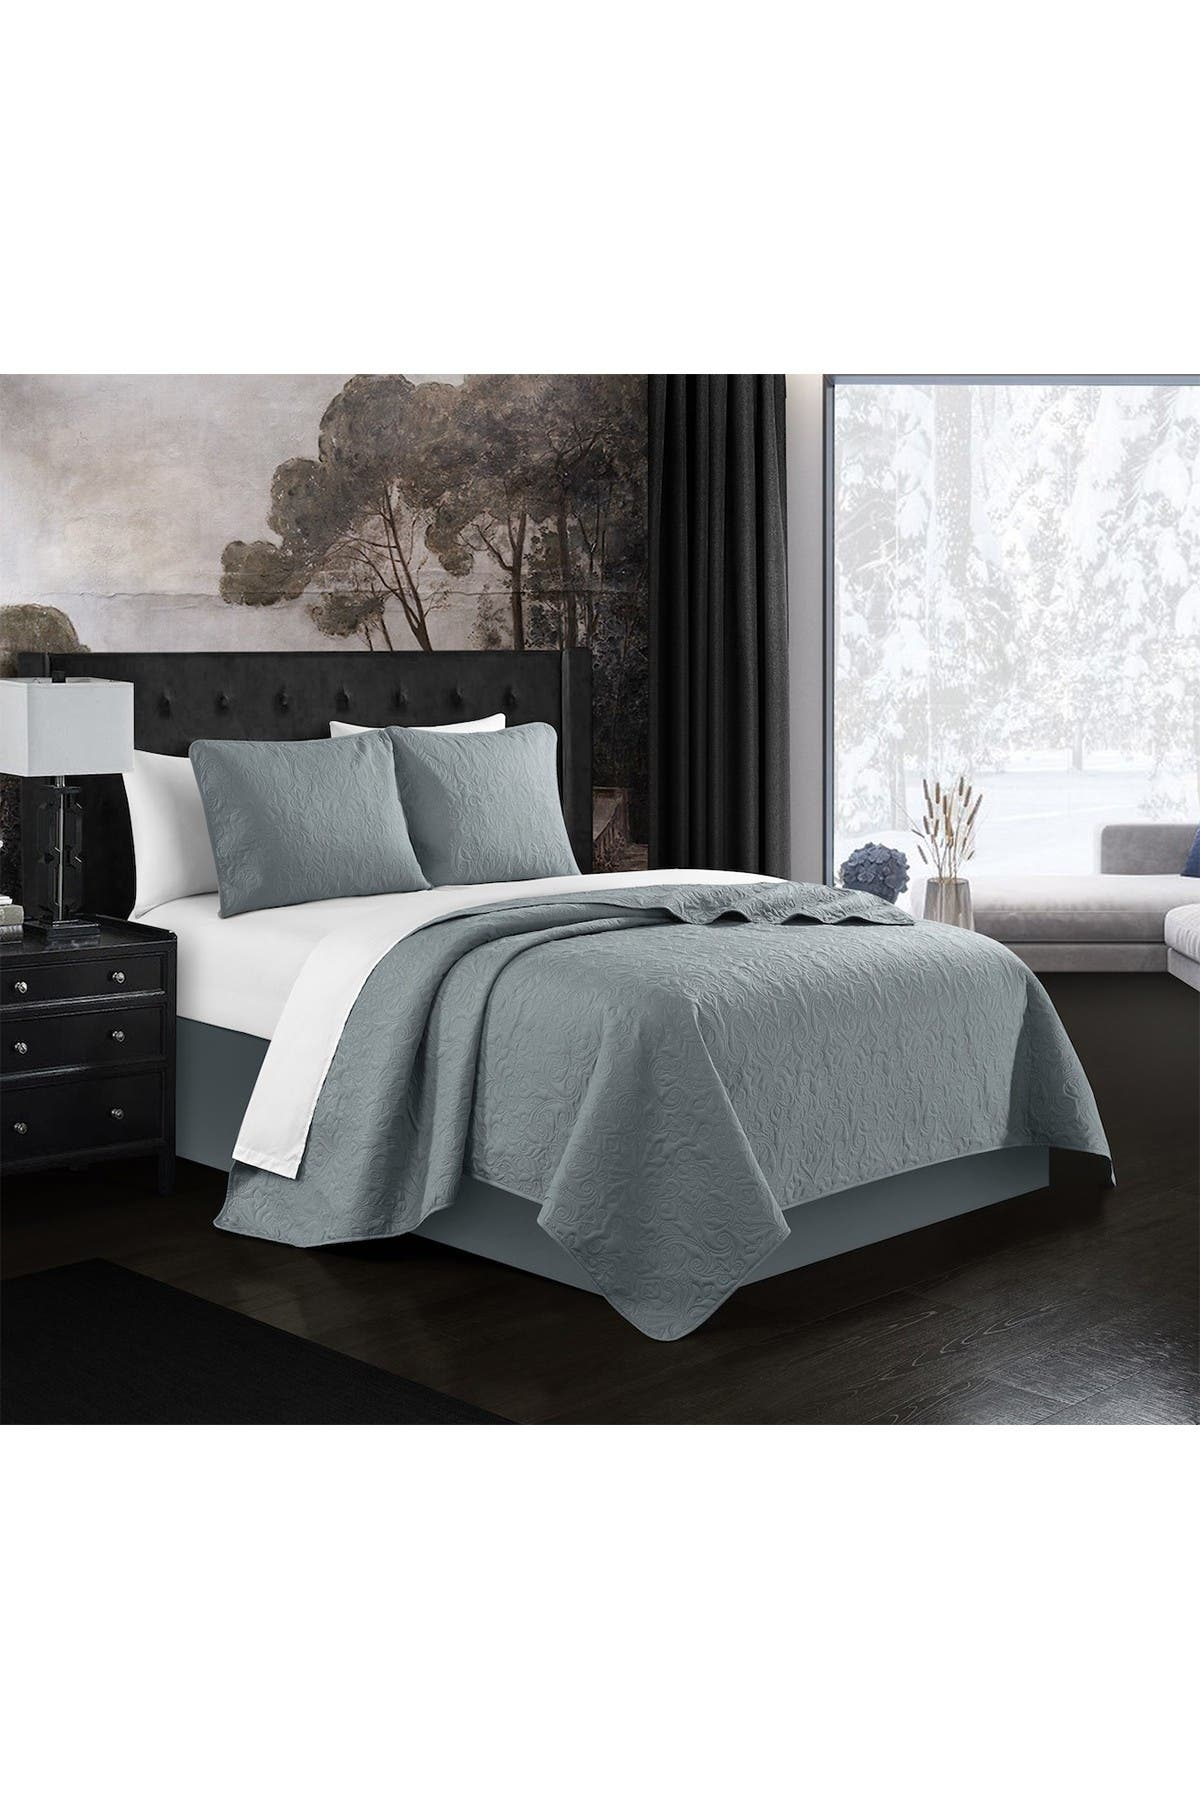 Image of Chic Home Bedding Milli Floral Scroll Pattern Twin Quilt Set - Grey - 2-Piece Set